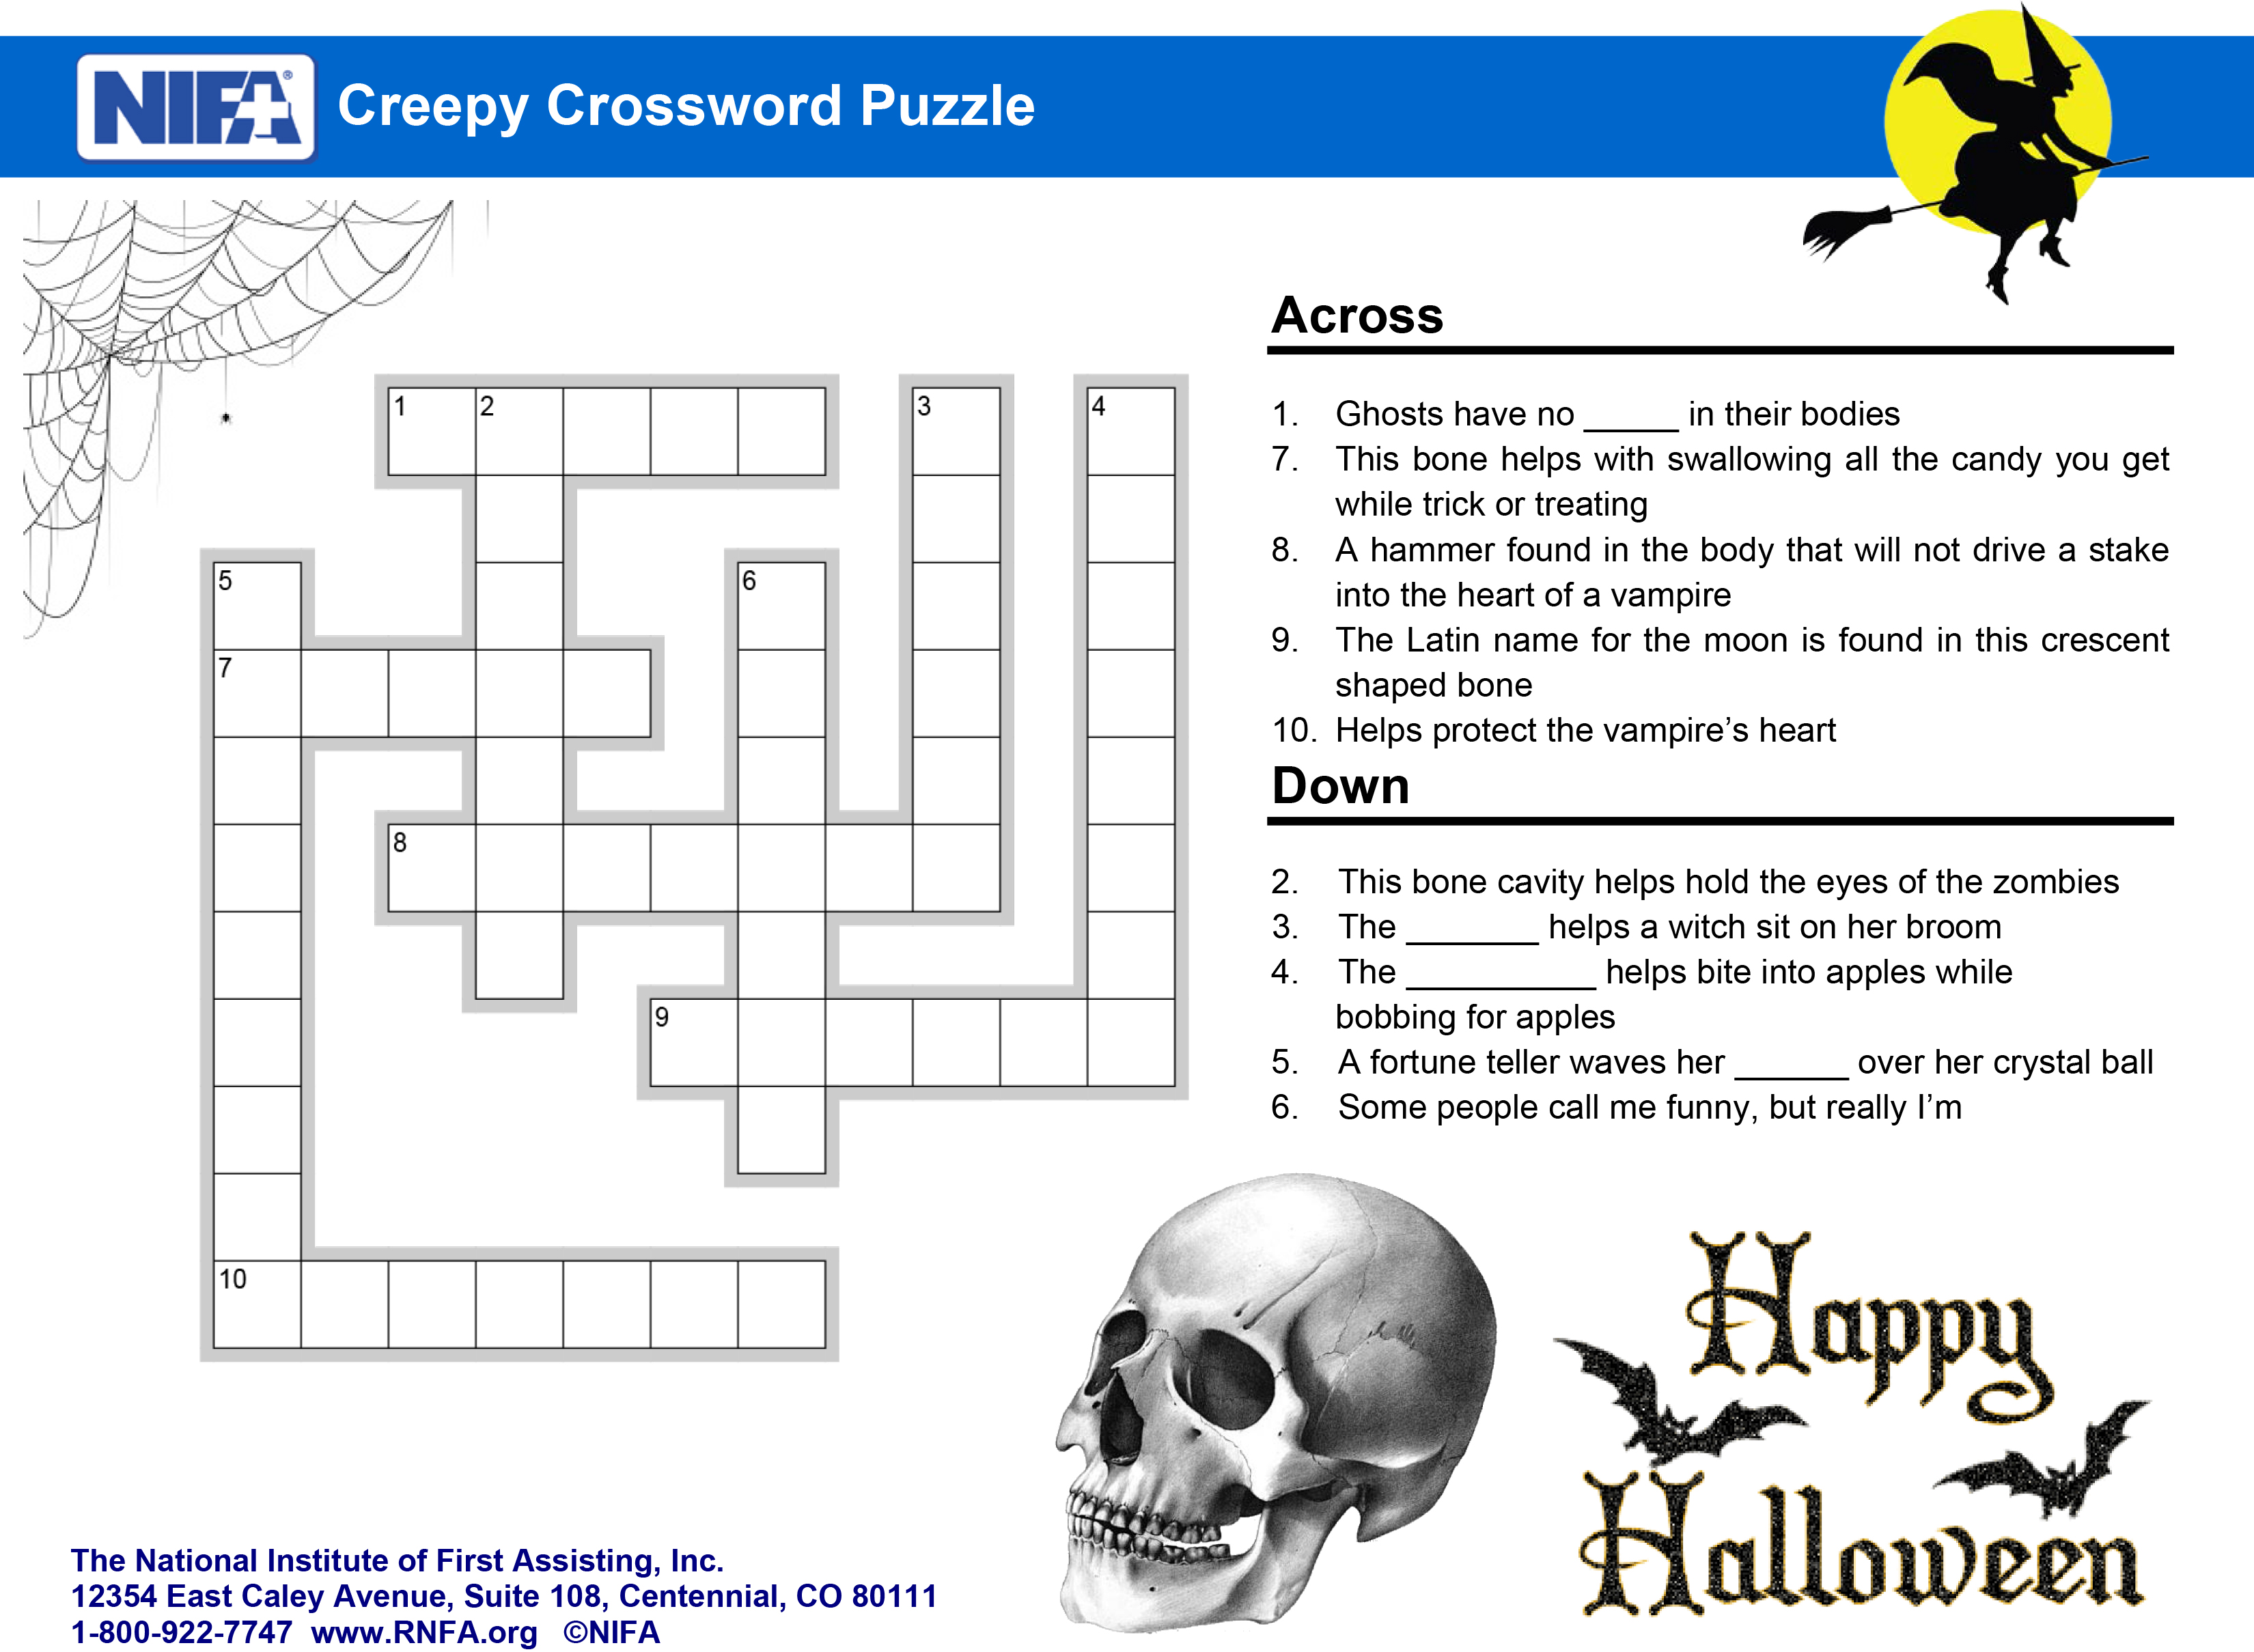 Creepy Crossword Clues October 2016 Rnfa